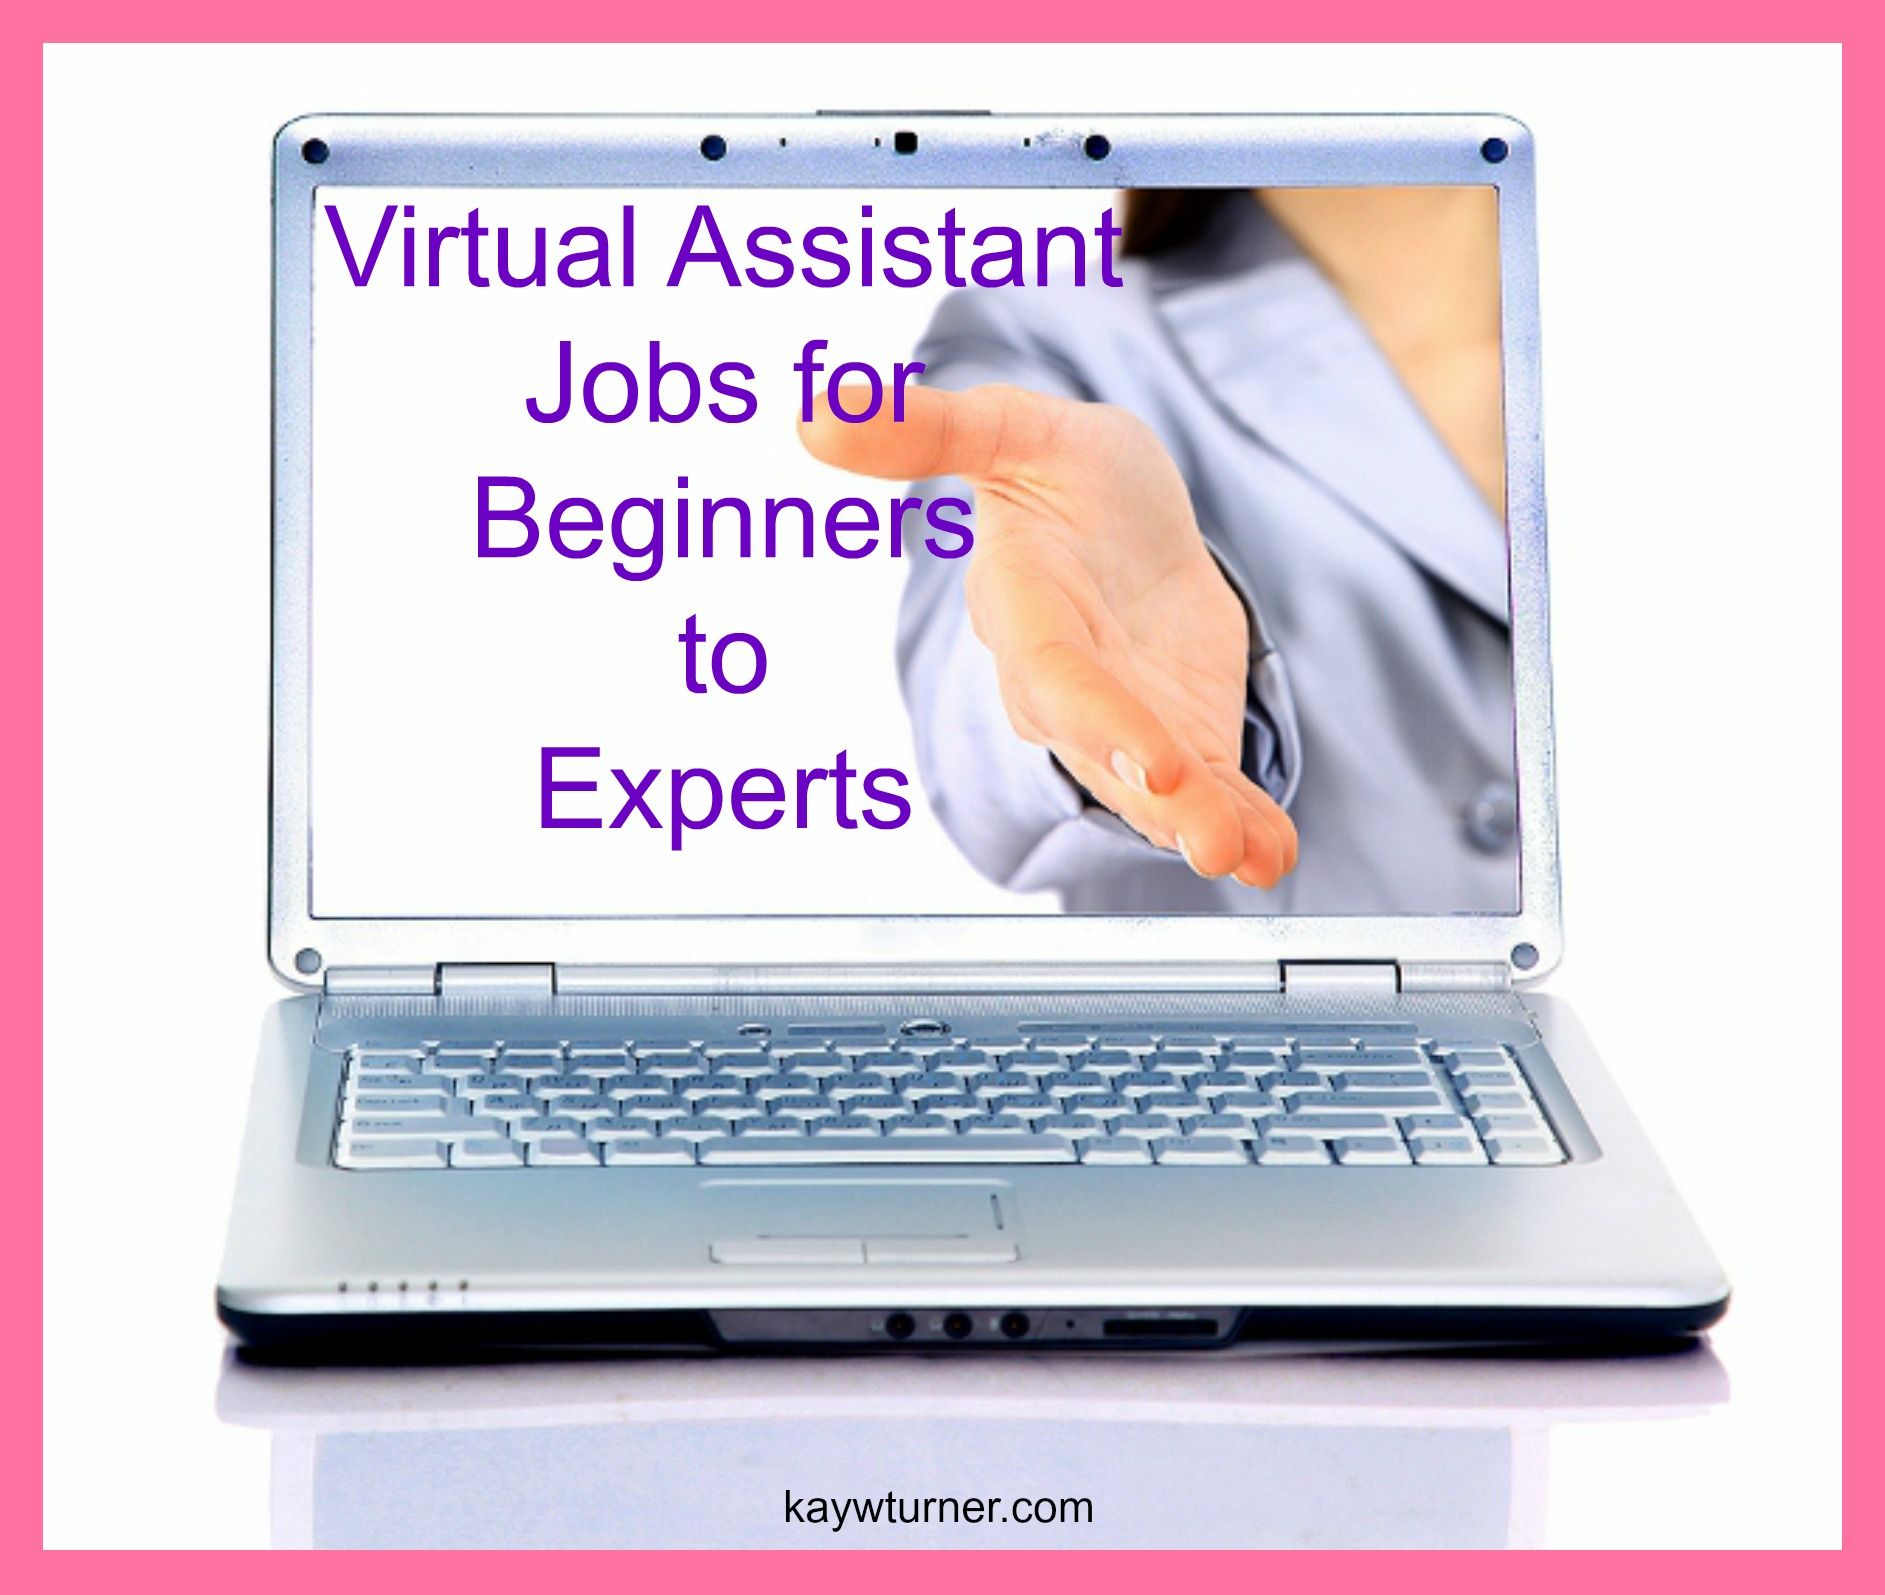 real virtual assistant jobs become a virtual assistant and apply for virtual jobs 21 work at home virtual assistant jobs to apply for today